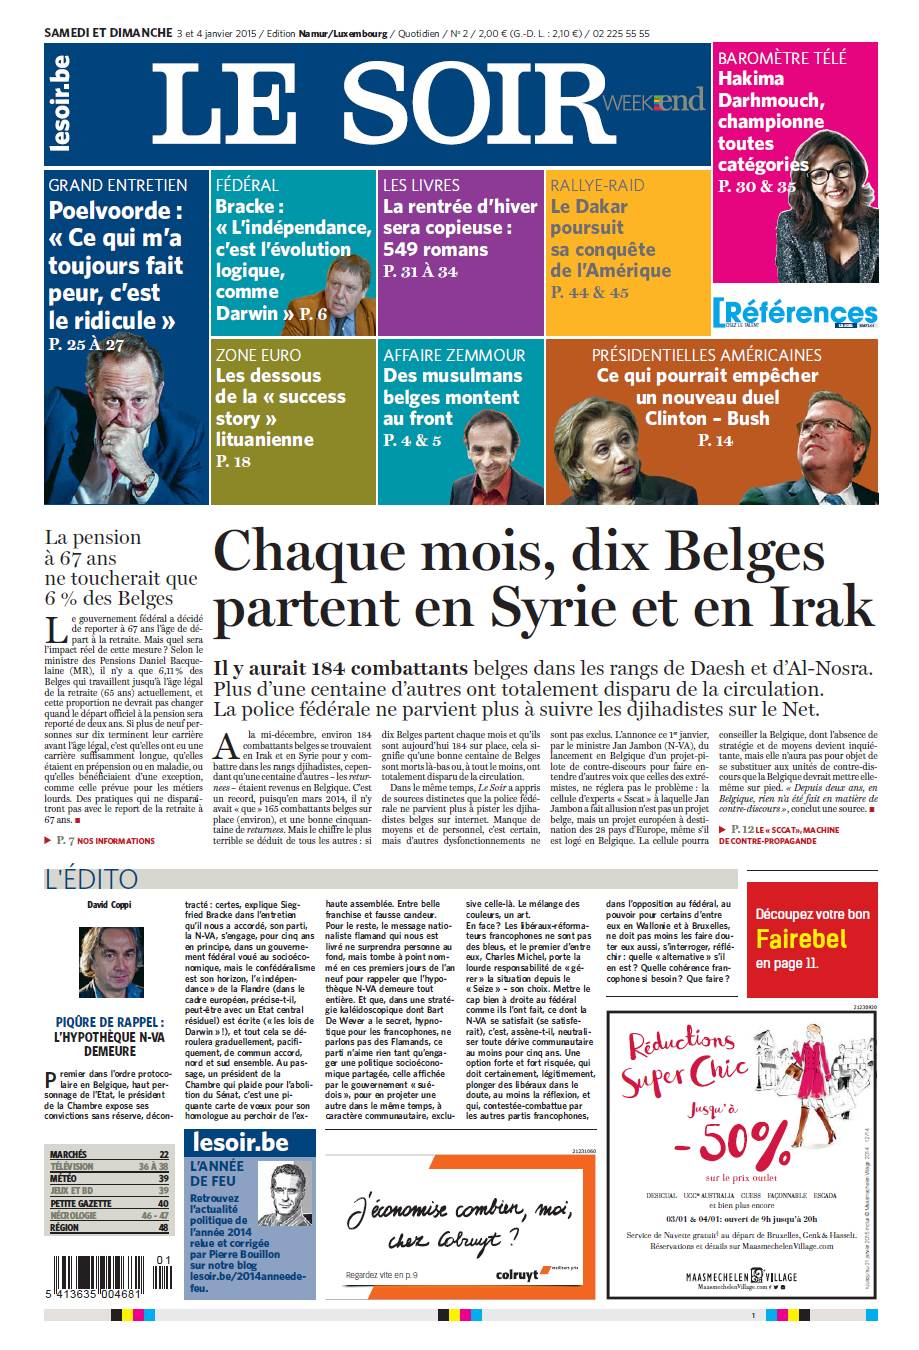 Le Soir du 03 Janvier 2015 free download